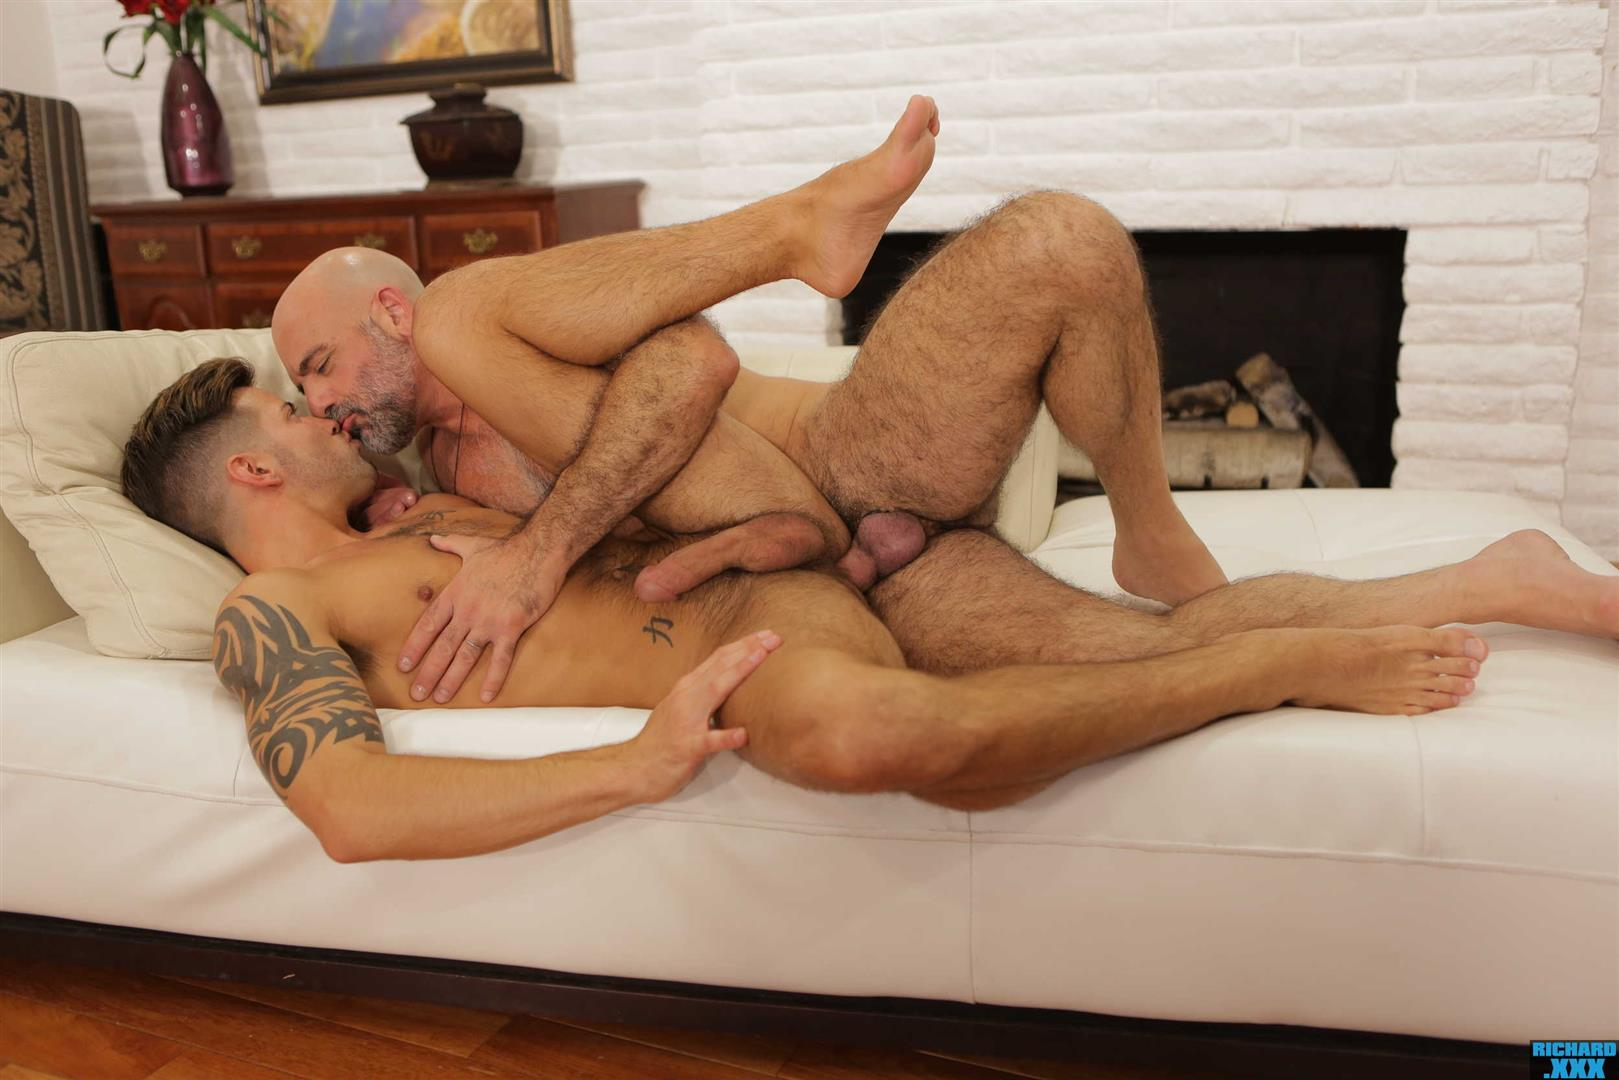 Richard-XXX-Adam-Russo-and-Casey-Everett-Muscle-Daddy-Thick-Dick-Bareback-Video-24 Hairy Muscle Daddy Adam Russo Bareback Fucking Casey Everett